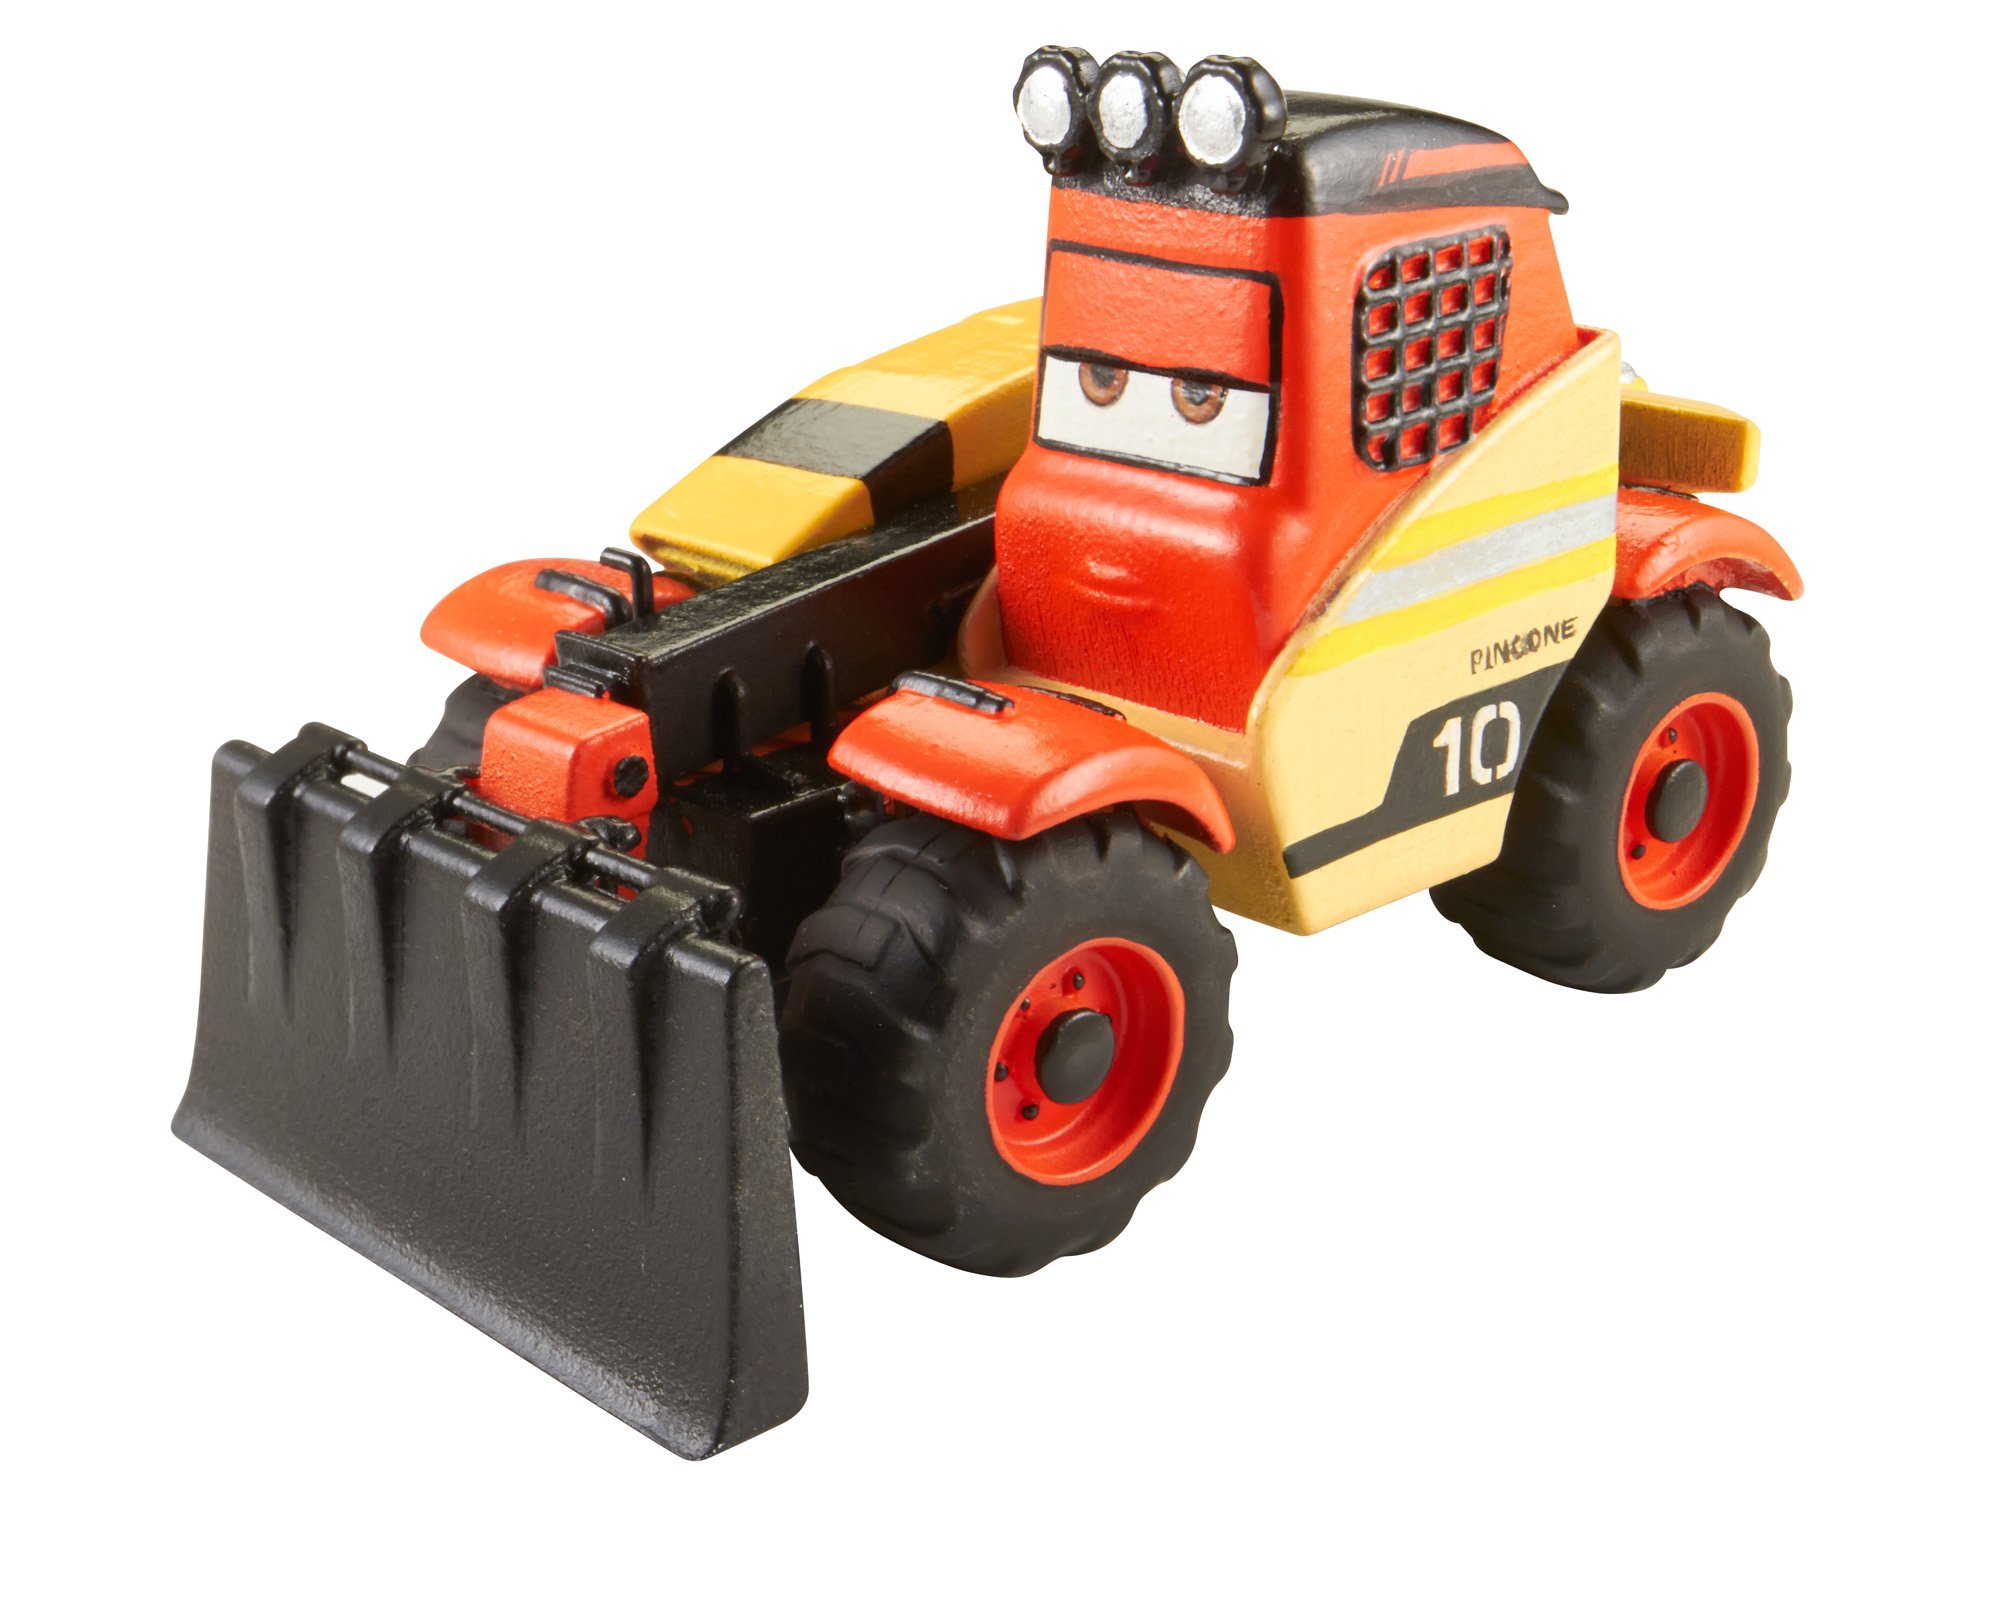 Disney Planes Fire and Rescue Pinecone Die-cast Vehicle